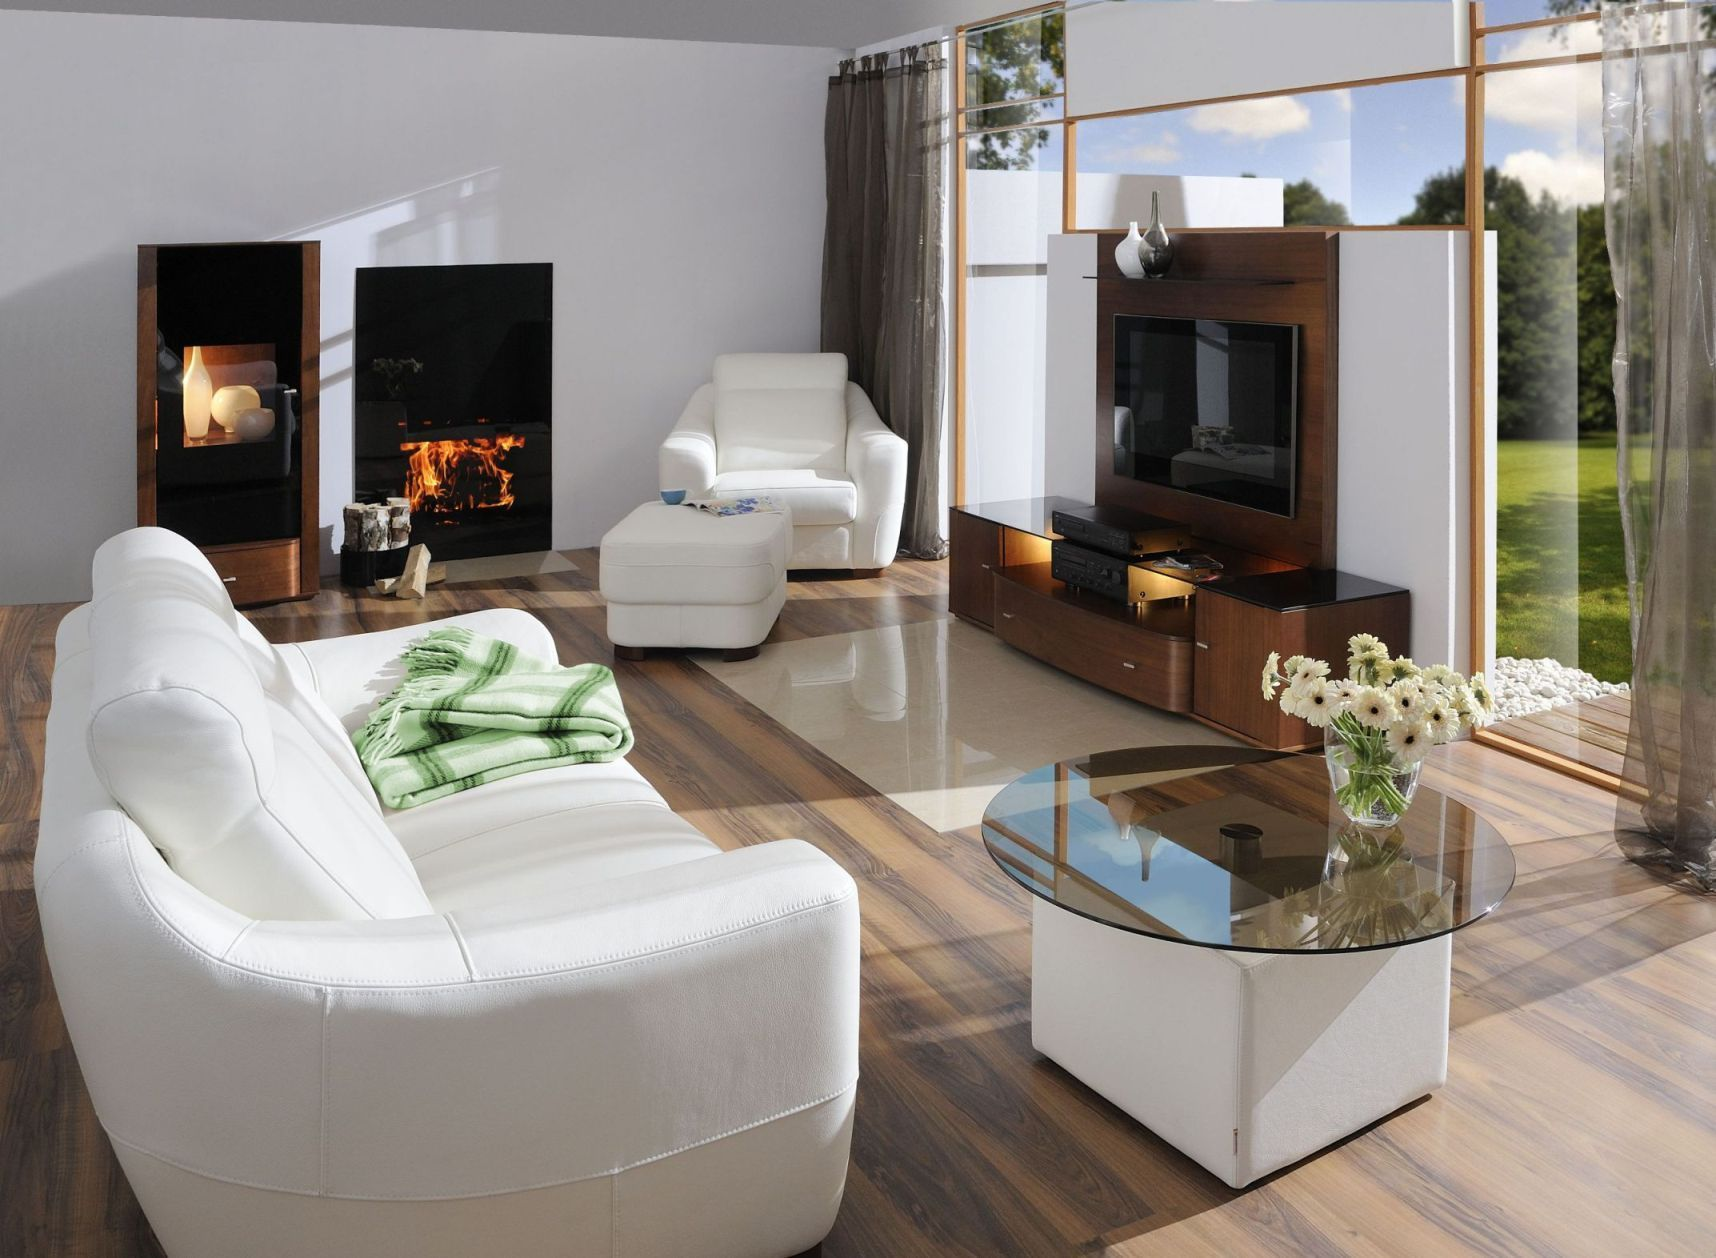 Living Room White Couch Living Room Ideas 1000 images about tv room design on pinterest modern living rooms wood stands and walls